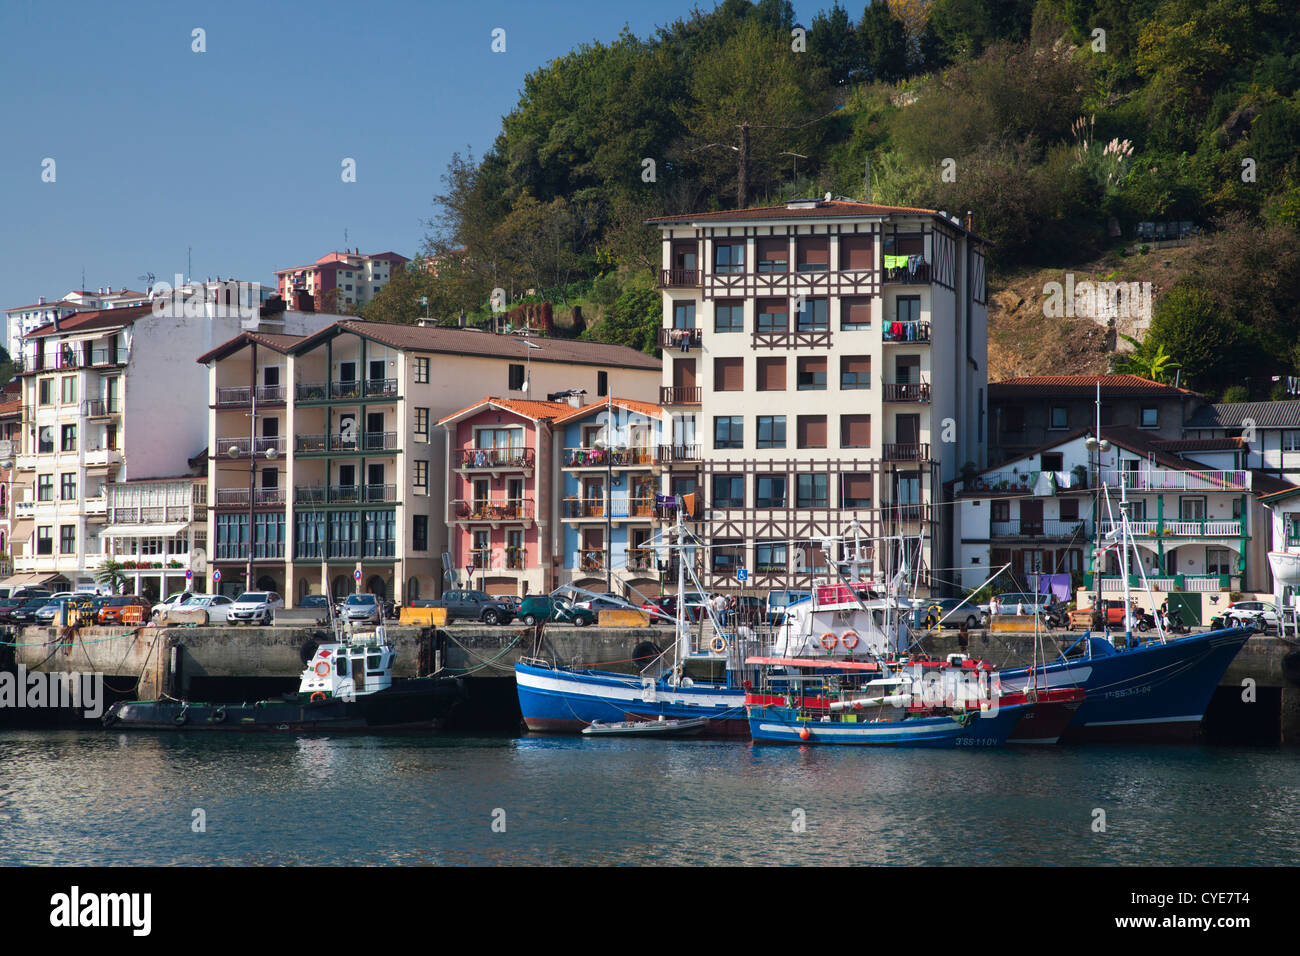 Spain, Basque Country Region, Guipuzcoa Province, Pasaia, Village of Pasai San Pedro, commercial fishing port - Stock Image